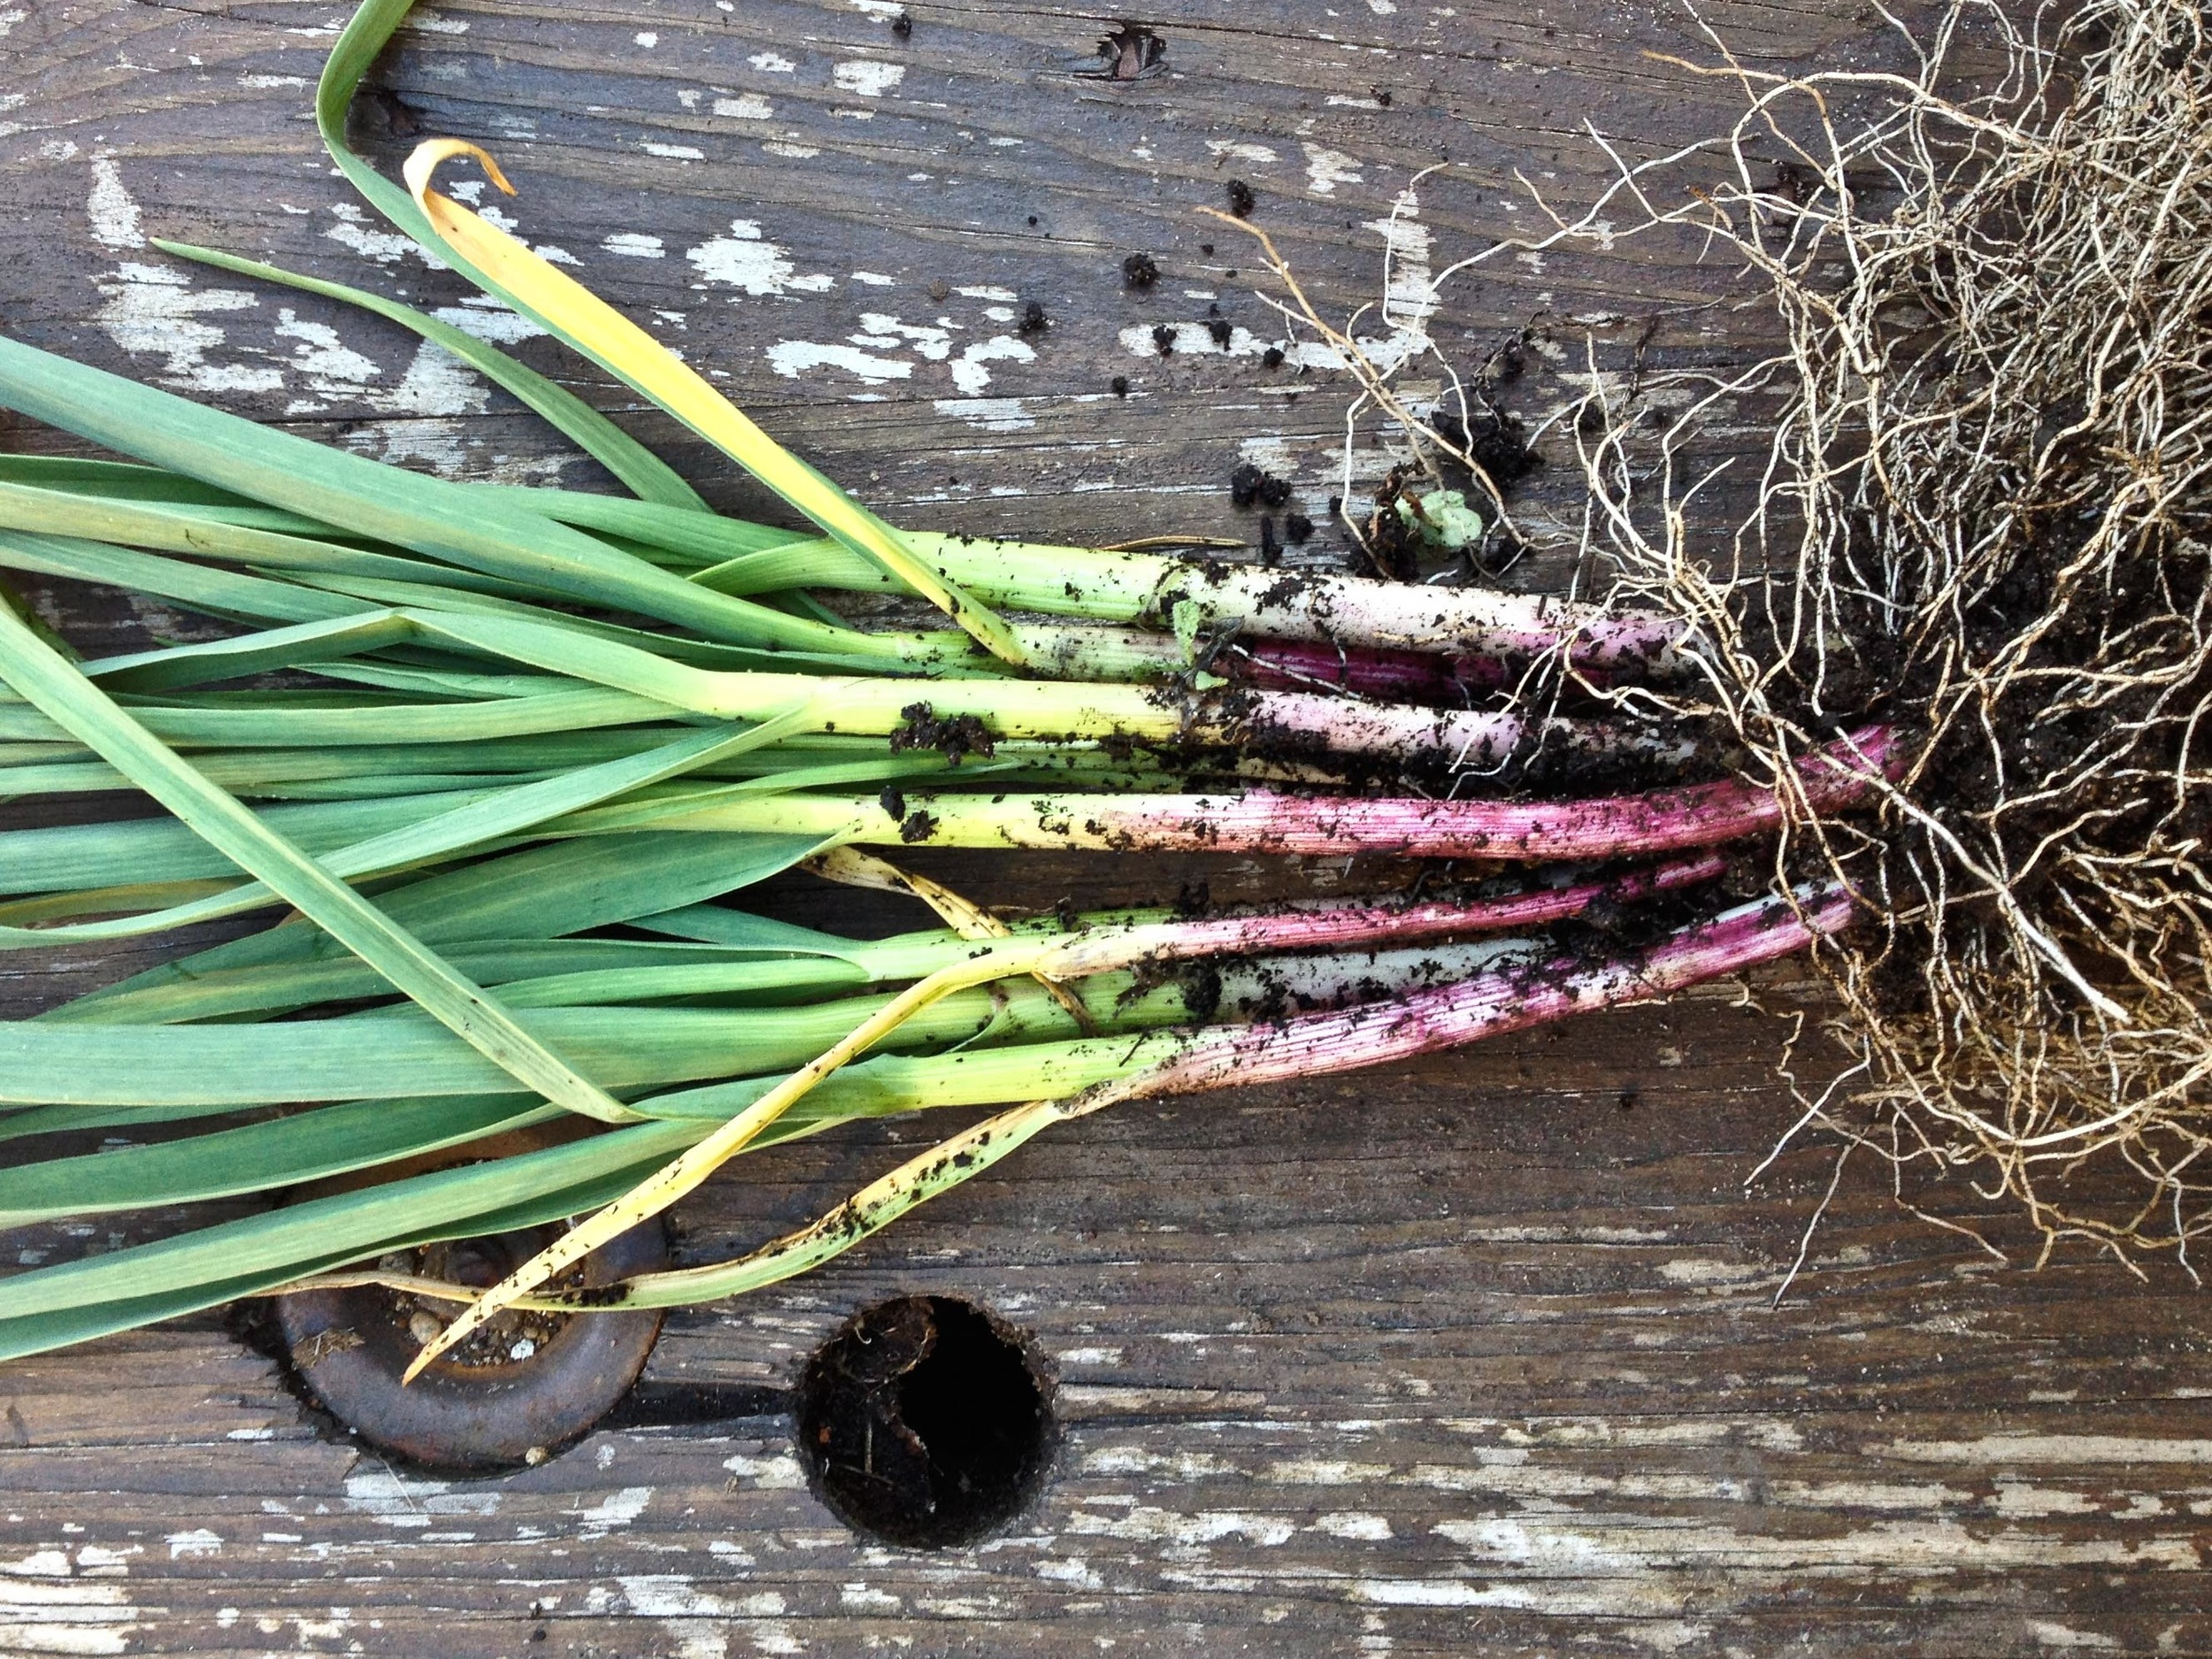 Harvested green garlic // All photos by Hilary Dahl